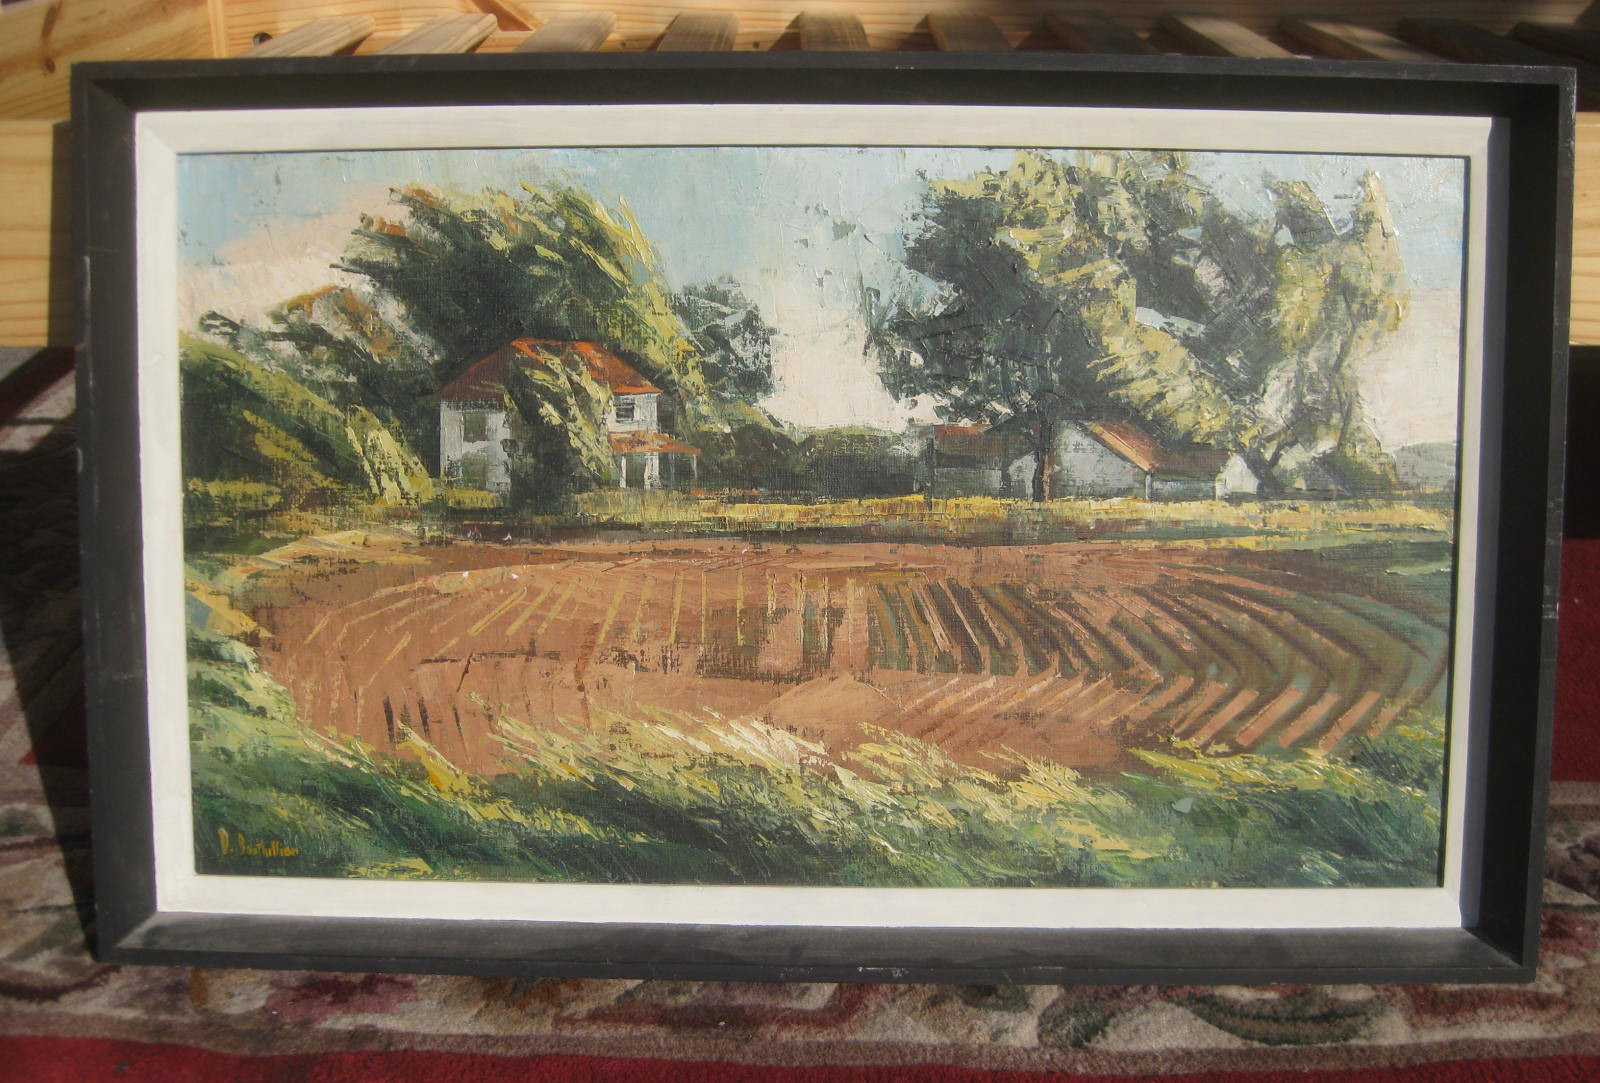 Uhuru Furniture Amp Collectibles Sold Large Donation Of Framed Art Too Many To Post